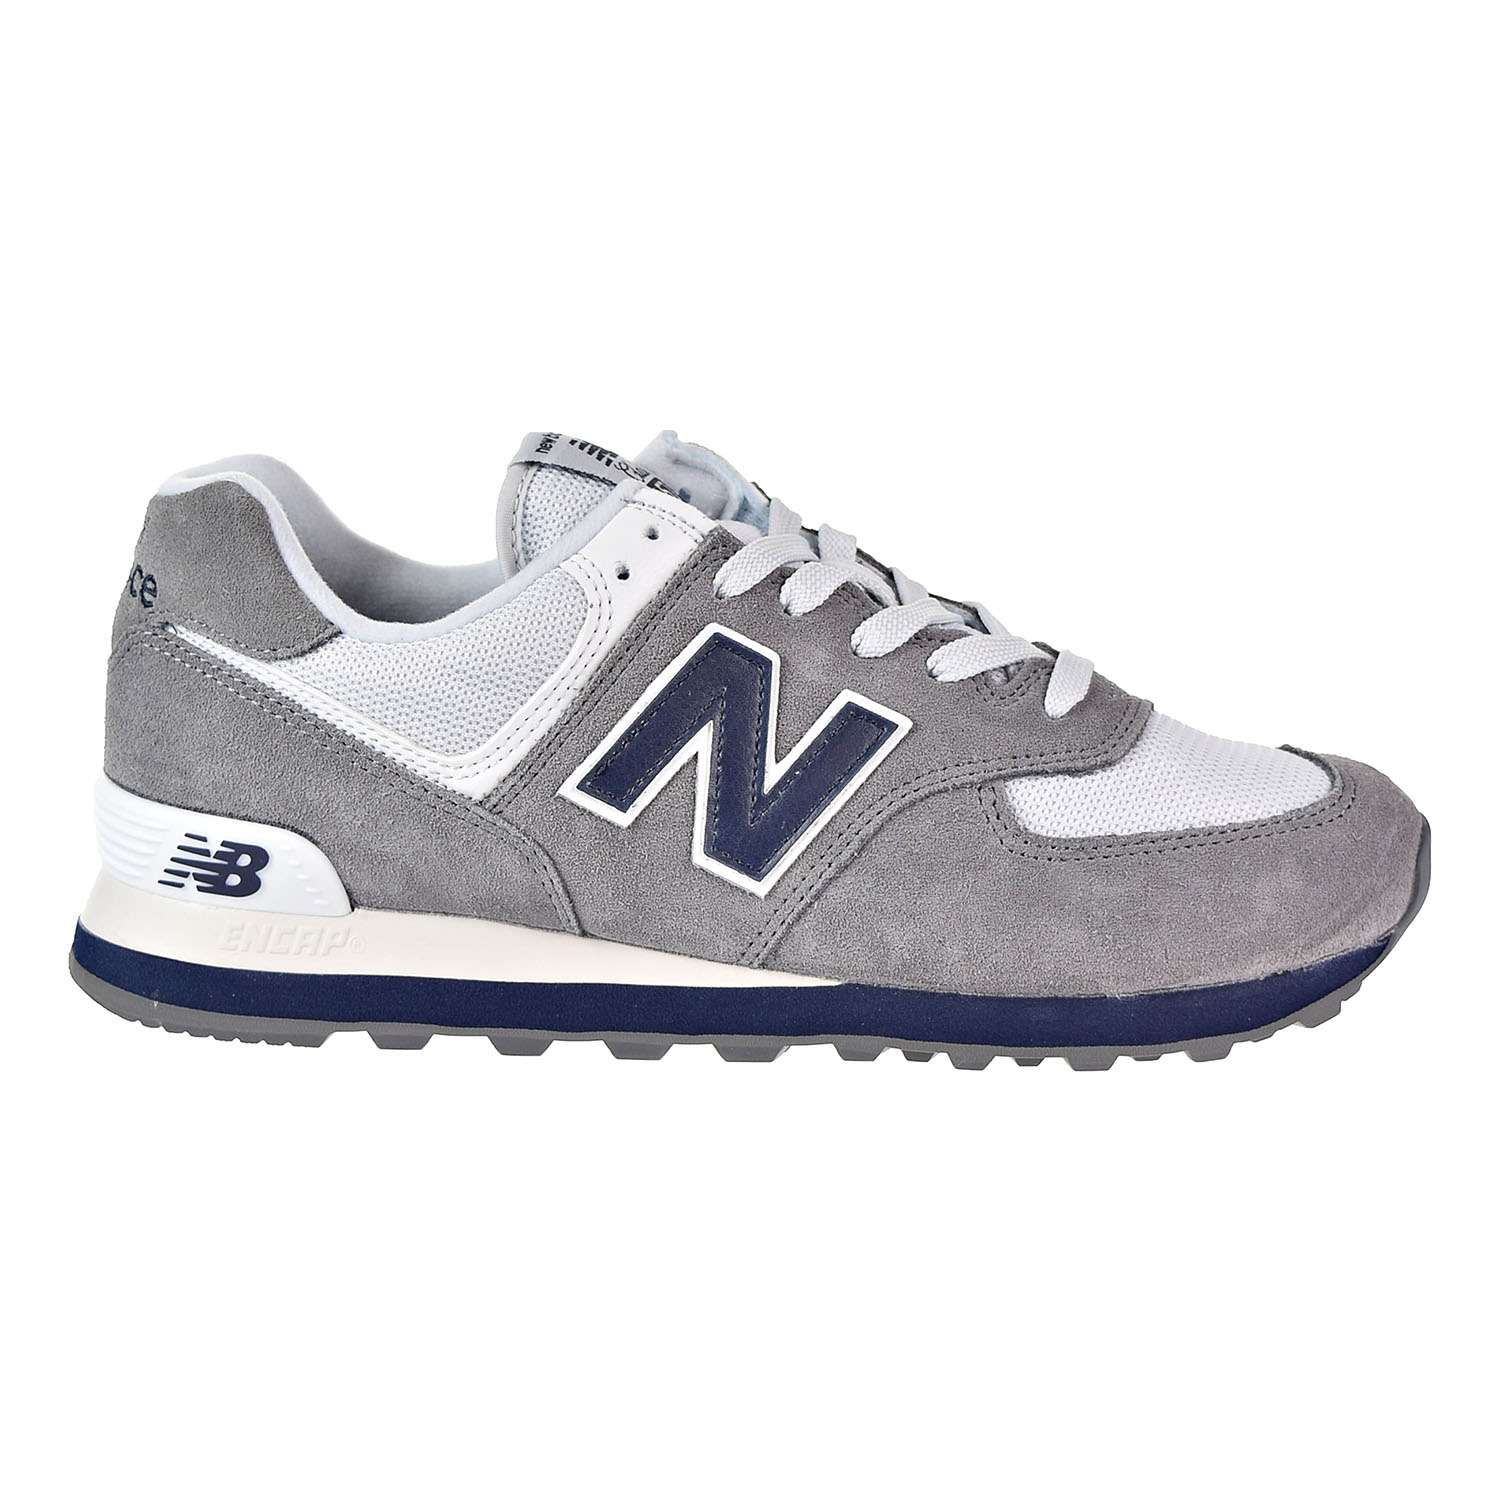 the best attitude 08996 e14ba Details about New Balance 574 Core Plus Men's Shoes Grey/Blue/White ML574ESD